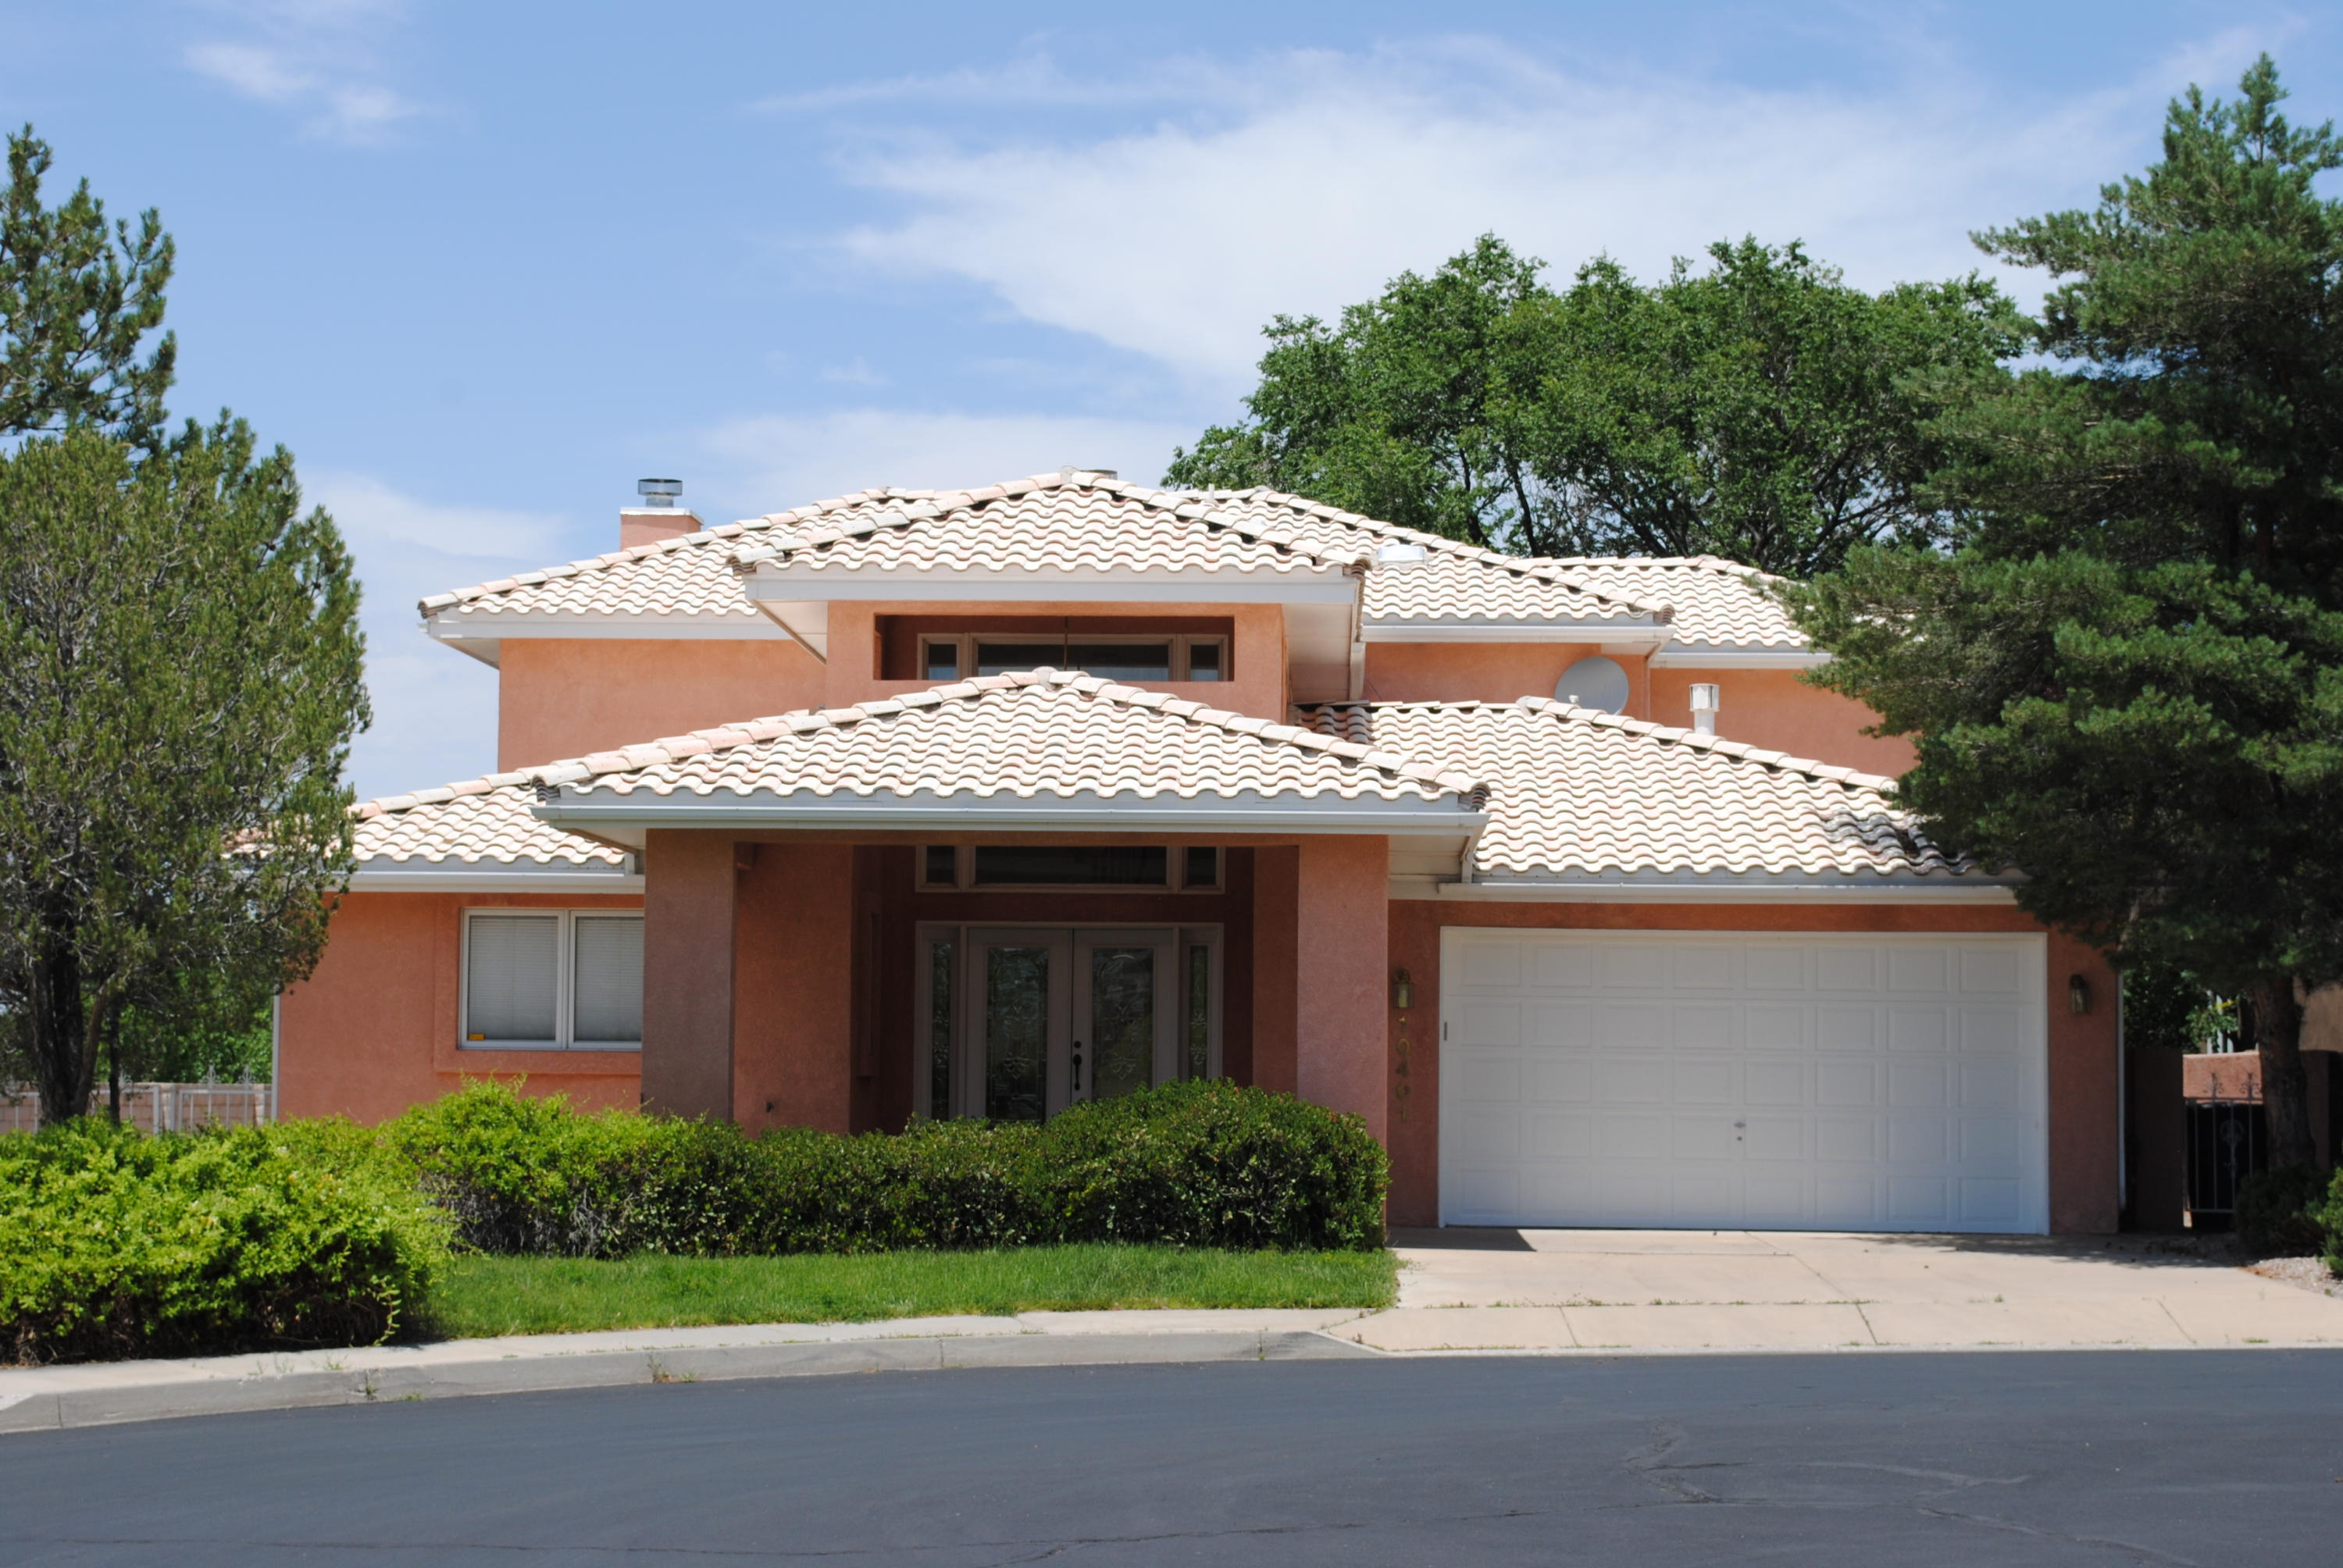 One of a kind Tanoan Home on the Golf Course backing to the Sandia 9. Covered circle driveway. Double glass doors greet you and open to a grand staircase in the foyer where travertine tile floors await. Lower level bedrooms share a Jack n Jill Bath. 3rd room with built-ins and wet bar can serve numerous purposes - Office, hobby or 4th bedroom. Step down living room with stone fireplace and handscraped hardwood flooring. Granite kitchen counters and island cooktop. Breakfast nook and formal dining room with built-in corner cabinets for your dinnerware. Sunroom with more travertine completes the lower level. Entire upper level of the home is the master suite. Nicely arranged bedroom with bed platform also has a wet bar and plenty of room for a chaise or sofa. Fantastic views to the West look